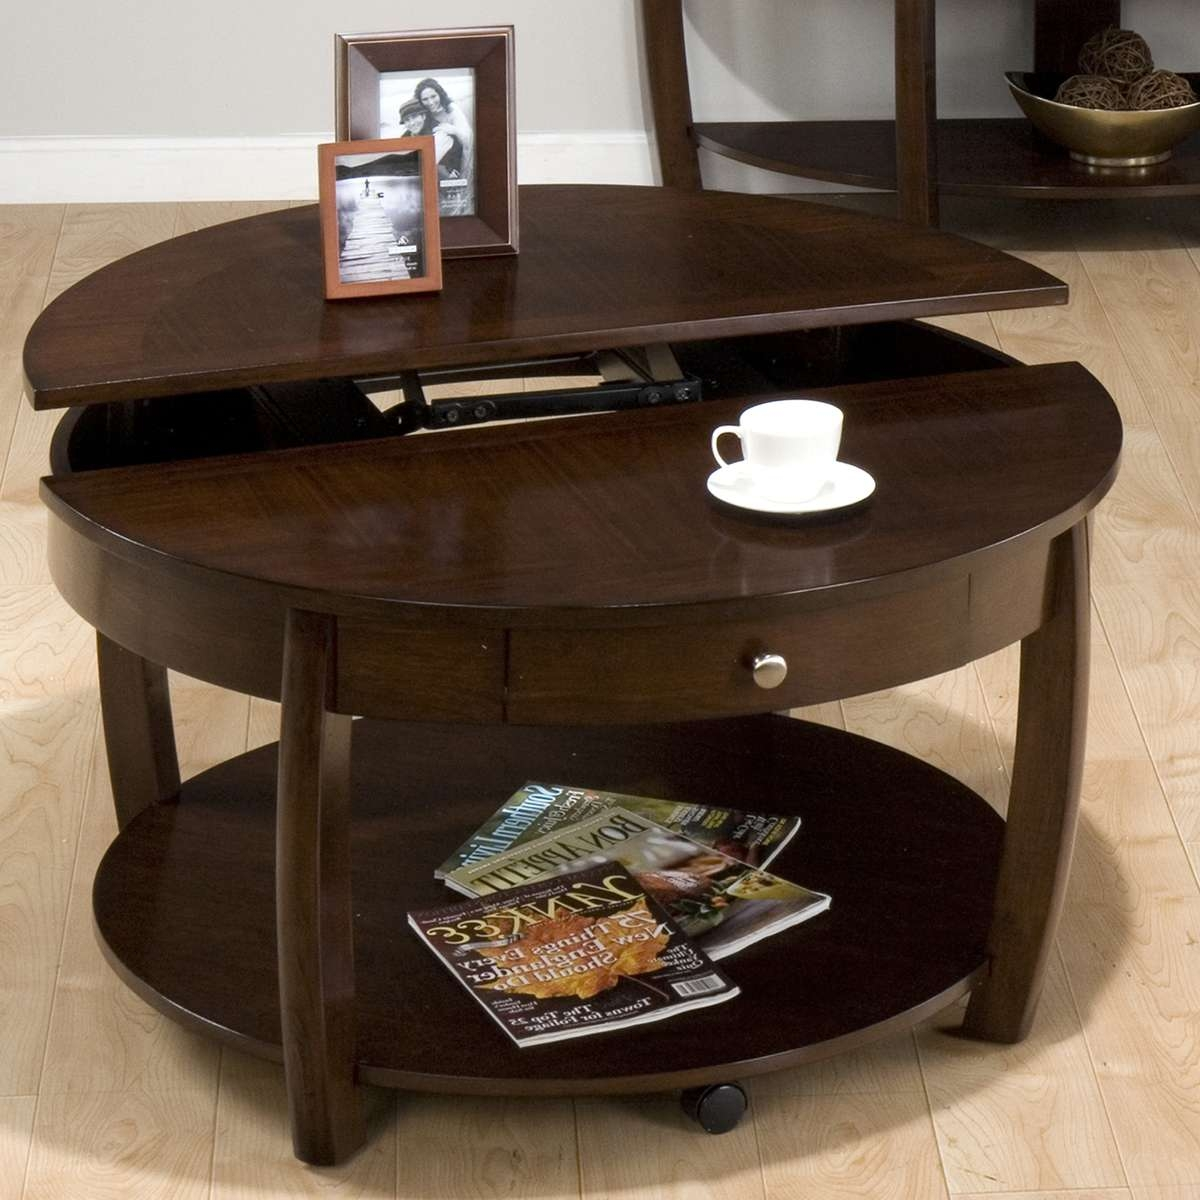 Best And Newest Round Coffee Tables With Storage Regarding The Round Coffee Tables With Storage – The Simple And Compact (View 3 of 20)